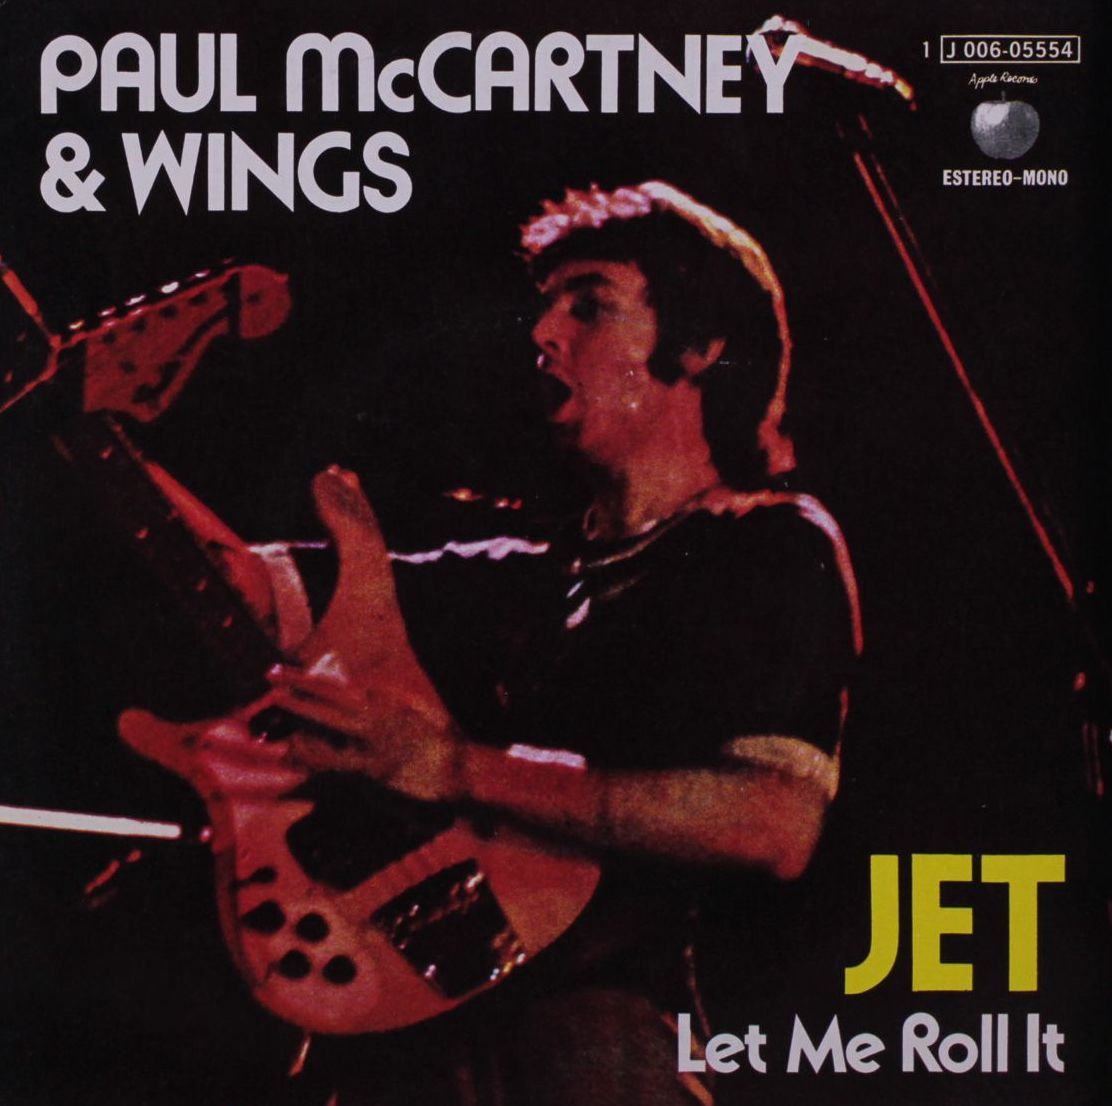 JET' By PAUL MCCARTNEY & WINGS – 45 Years Ago… | TURN UP THE VOLUME!